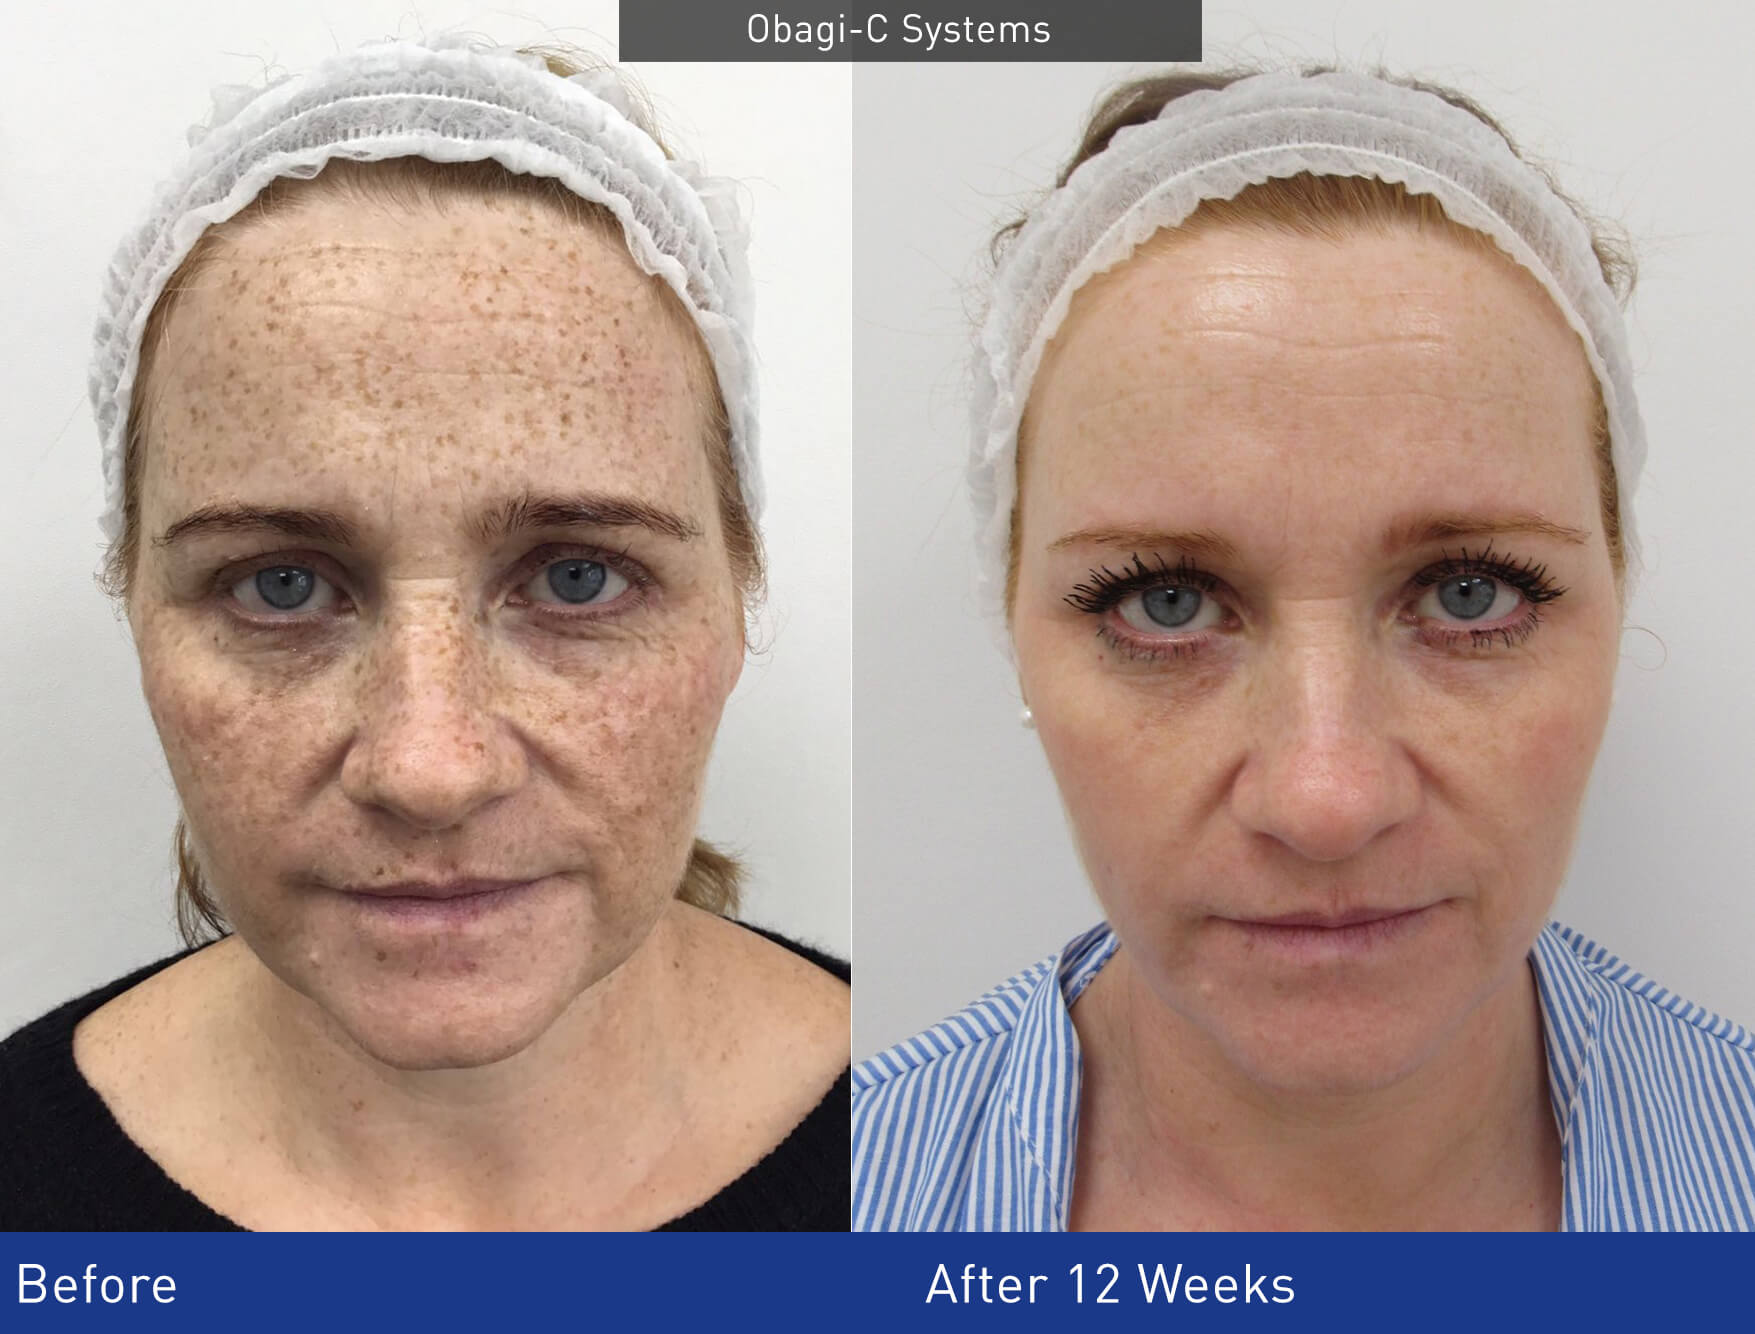 Obagi-C RX treatment